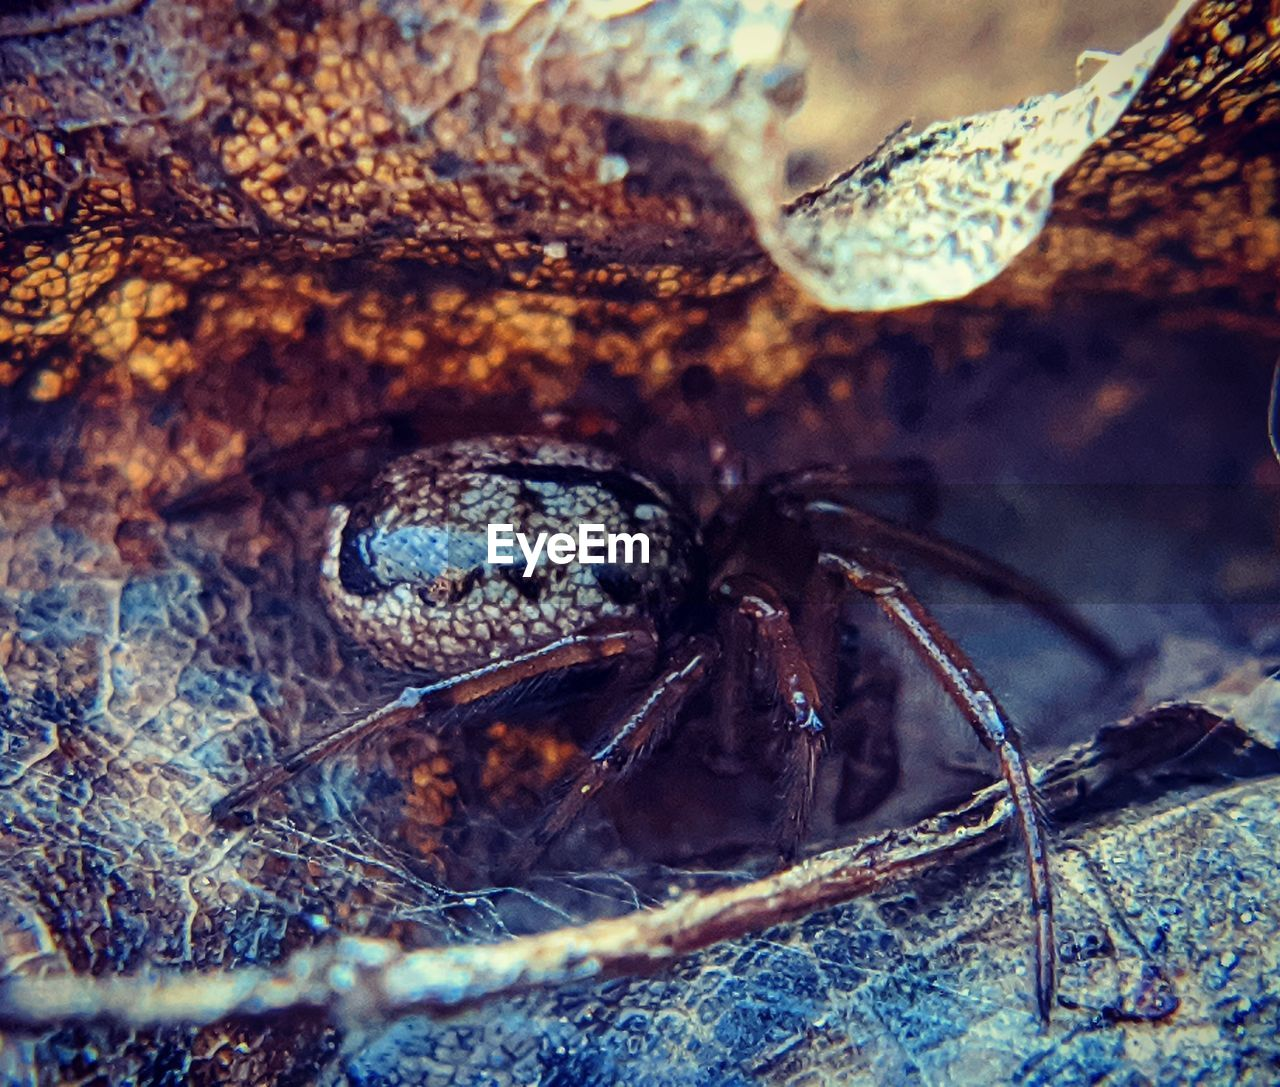 CLOSE-UP OF SPIDER IN WATER